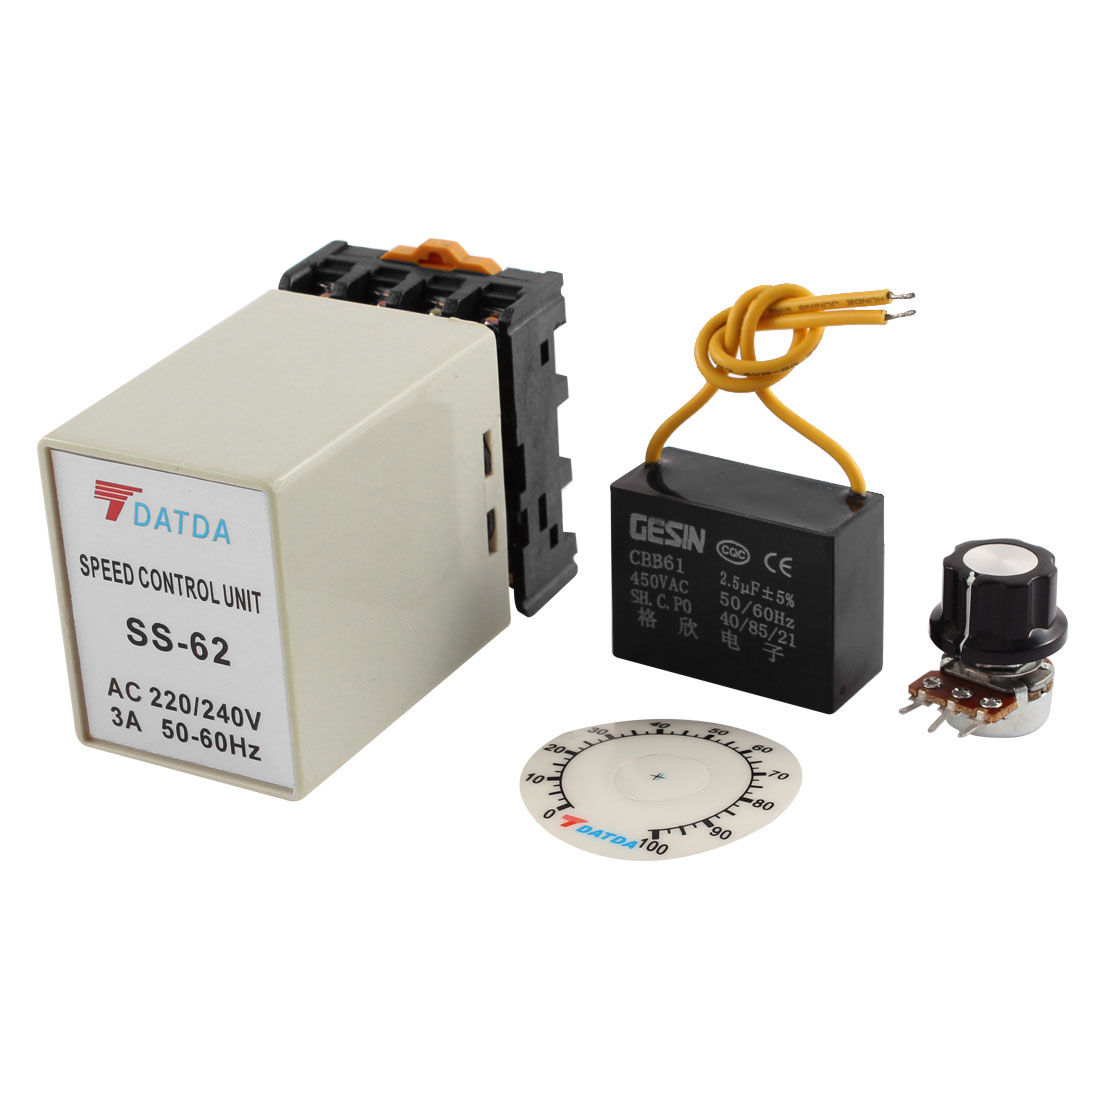 SS-62 Single Phase AC Motor Speed Control Unit Controller AC 220V/240V 3A 50-60Hz